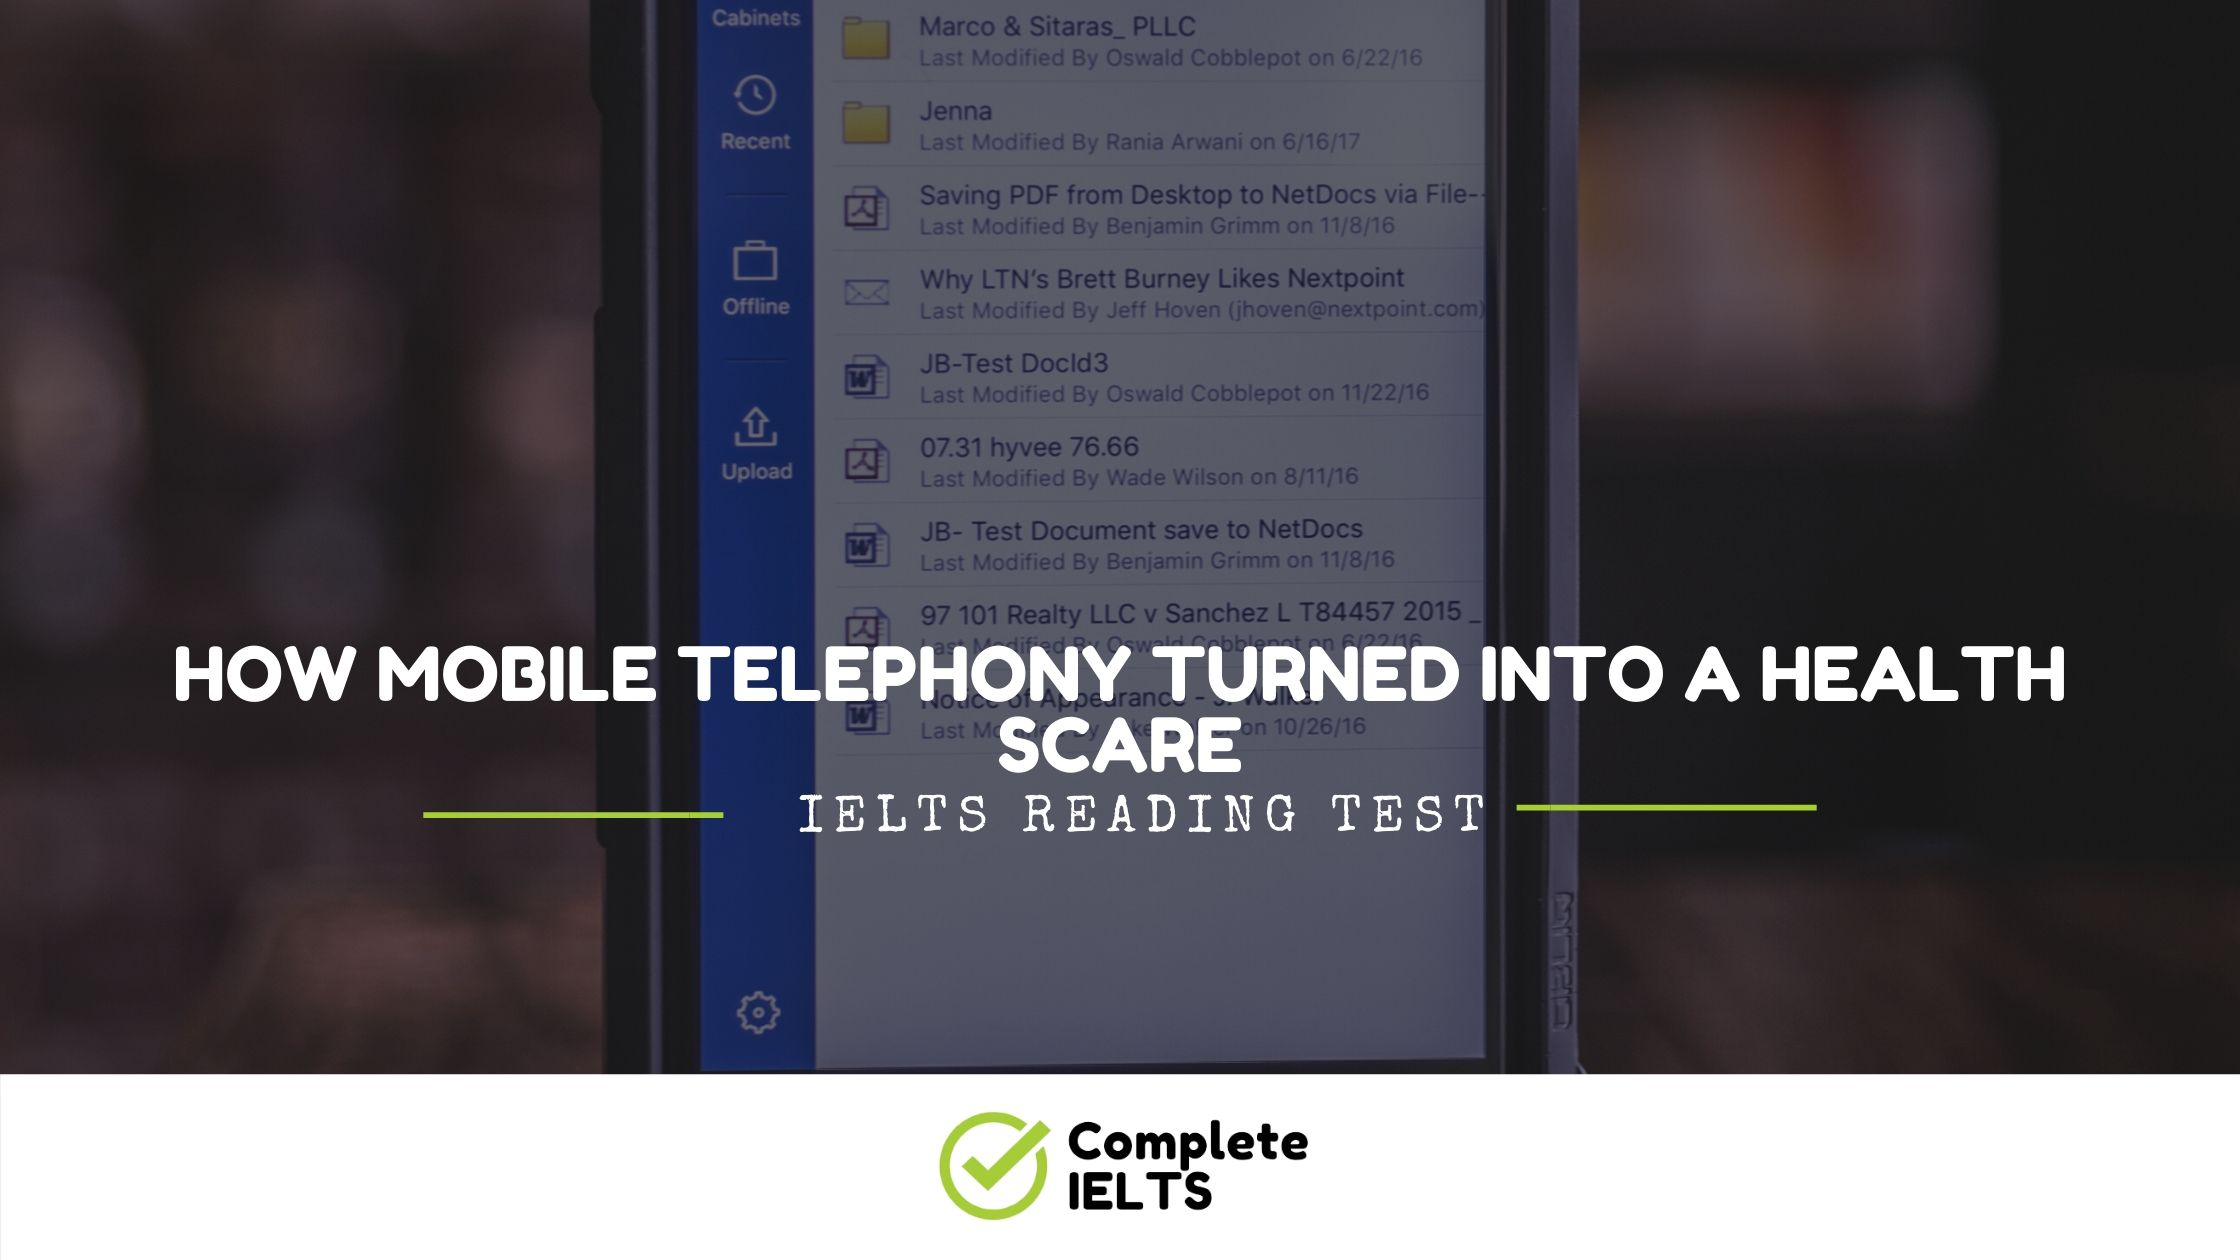 How Mobile Telephony Turned into a Health Scare